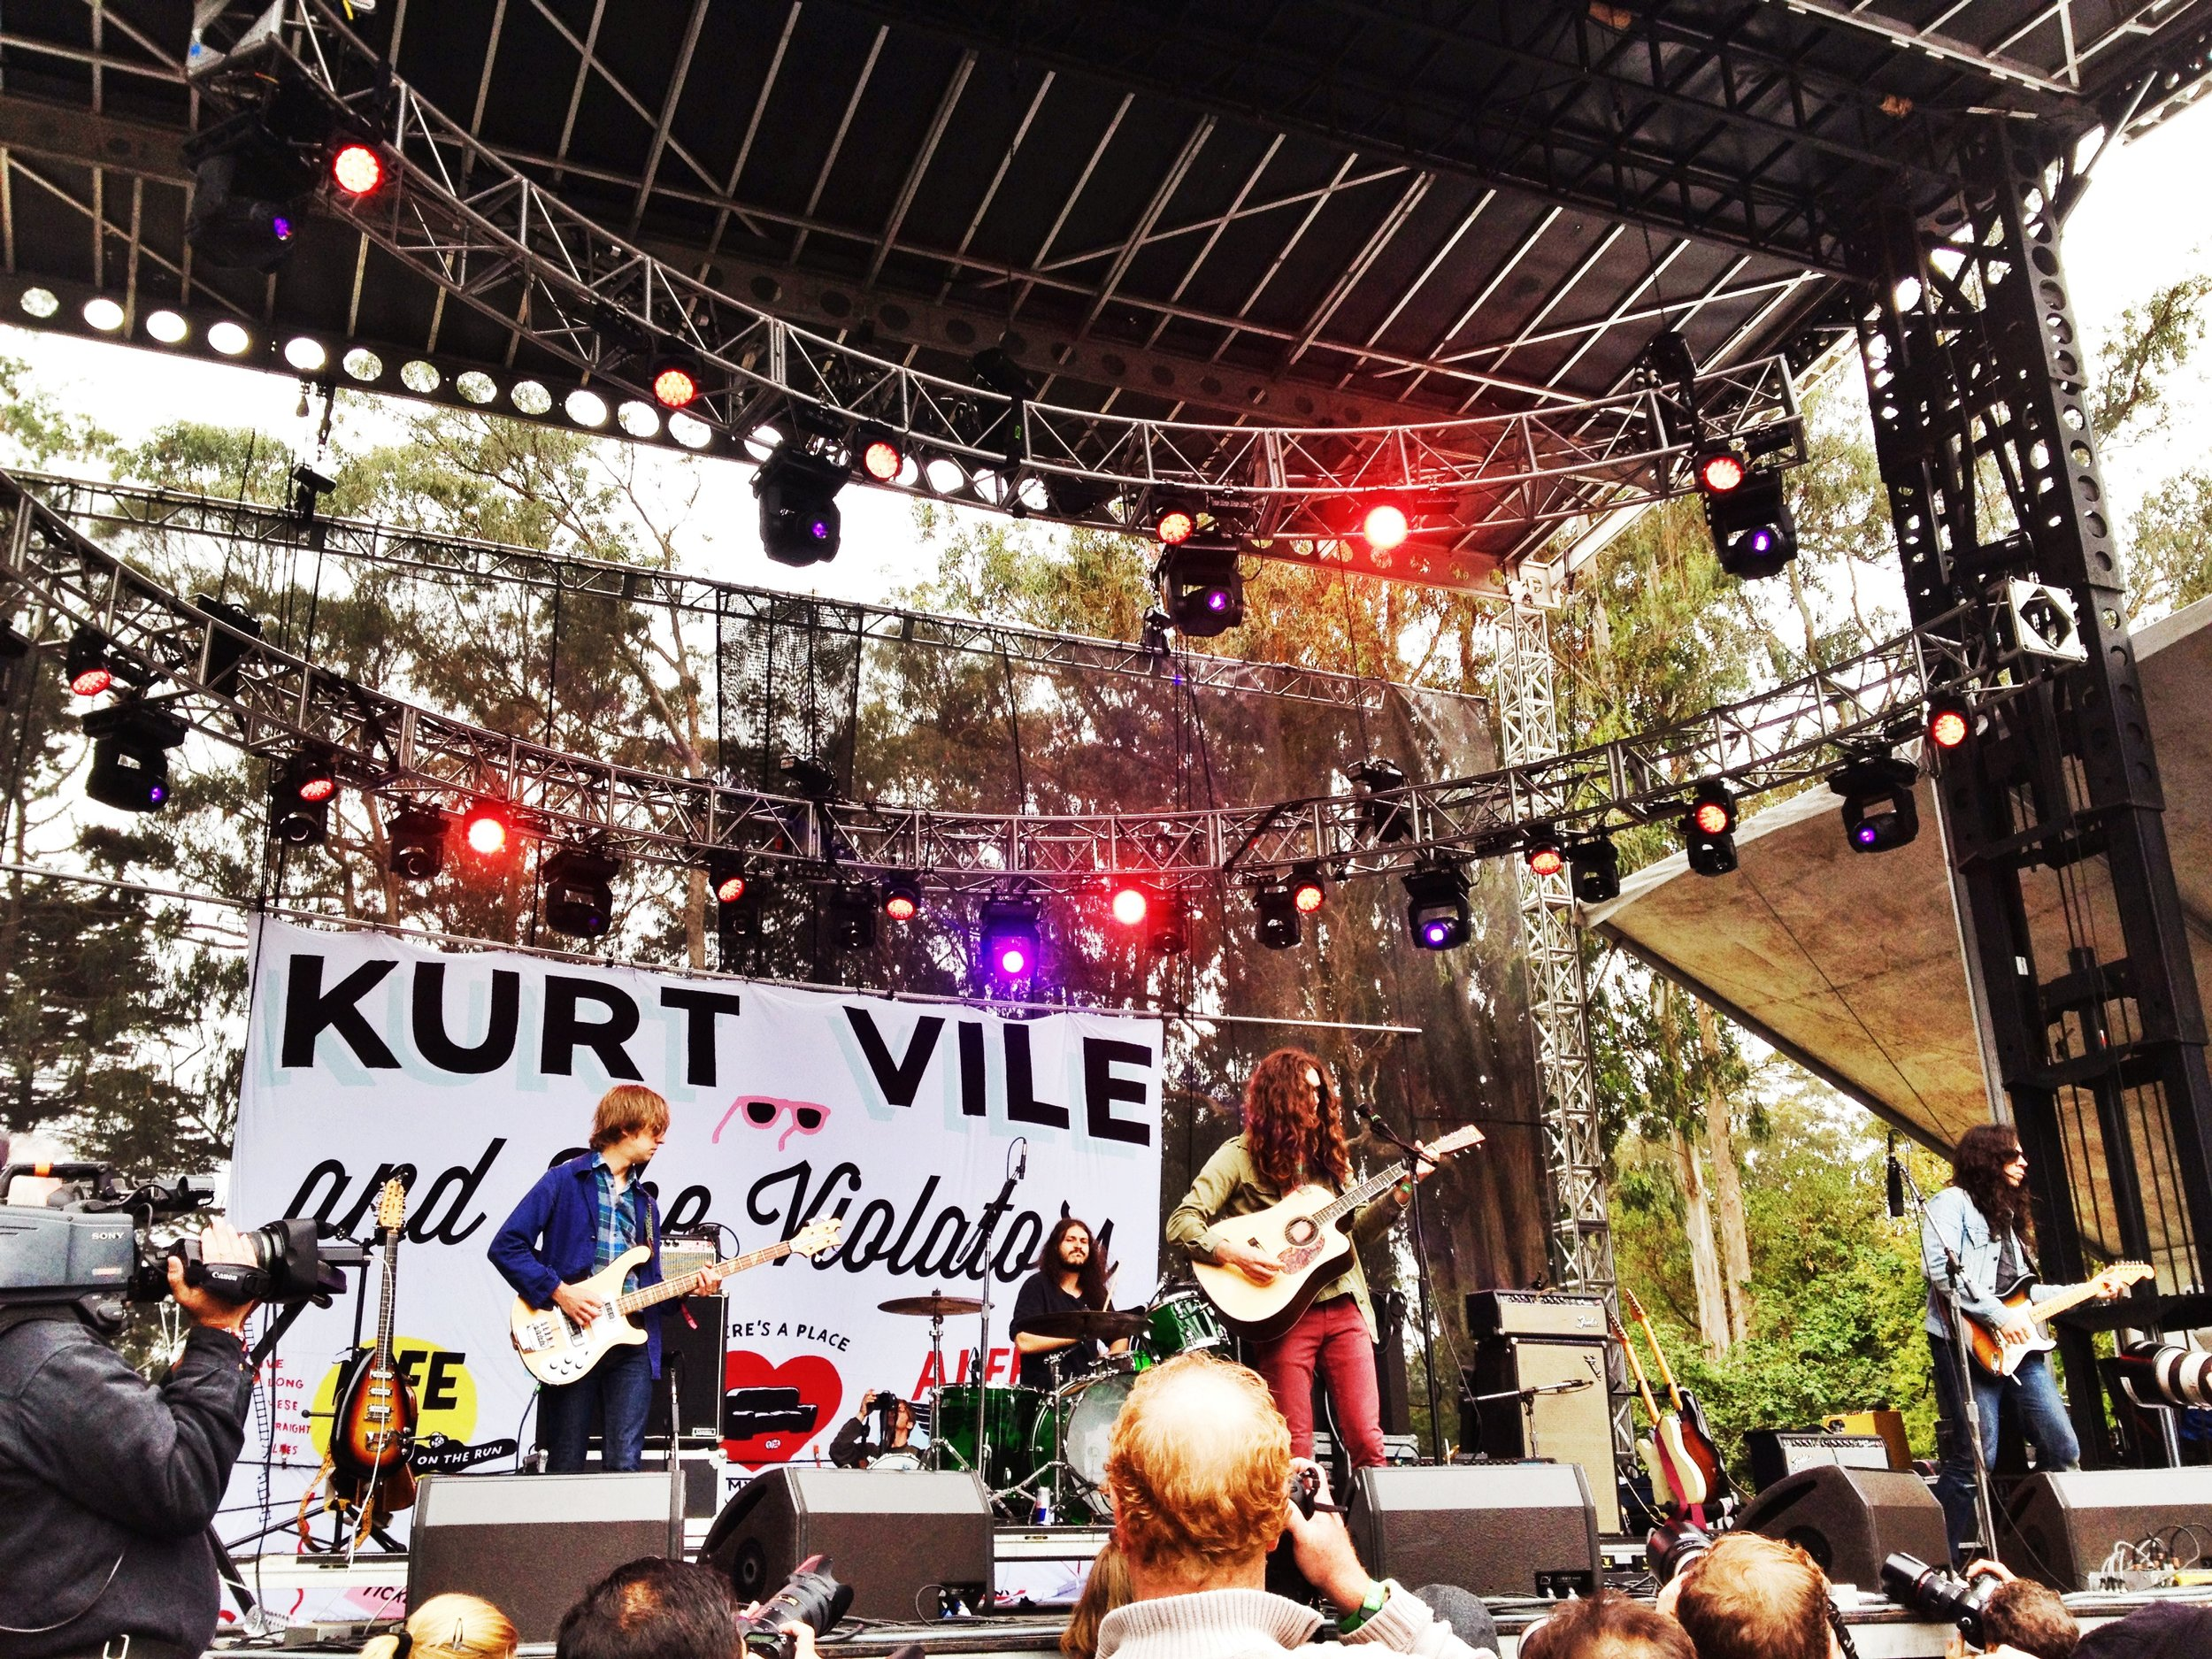 Kurt Vile and The Violators!